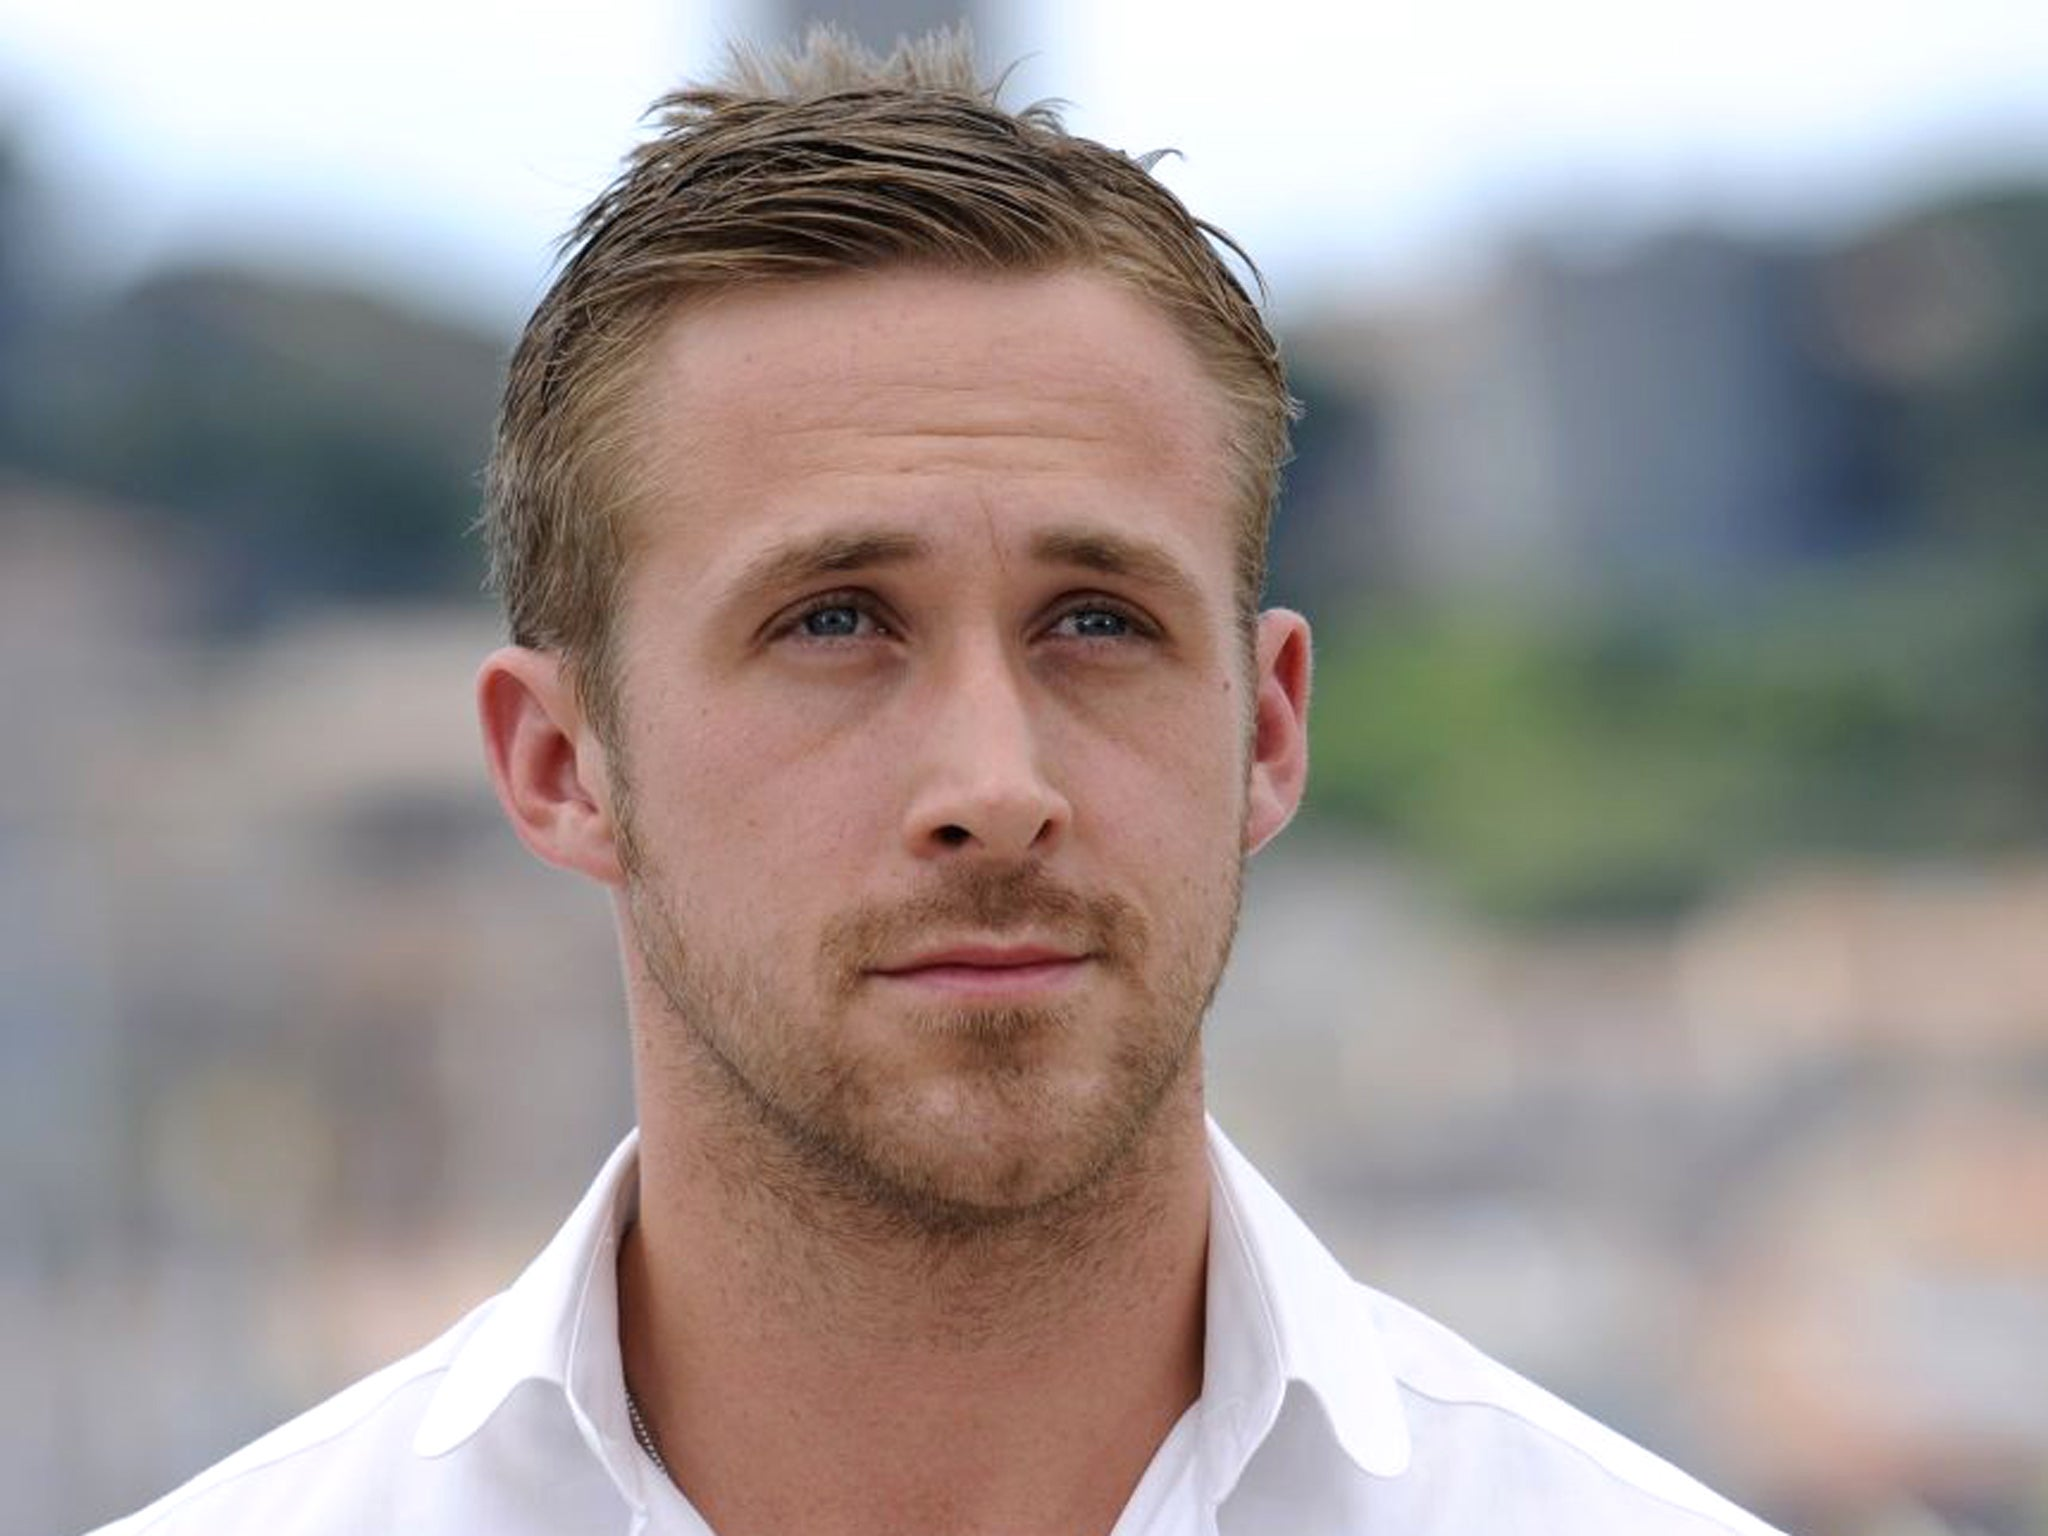 Ryan Gosling tells all about the love of his life (his dog, George ...